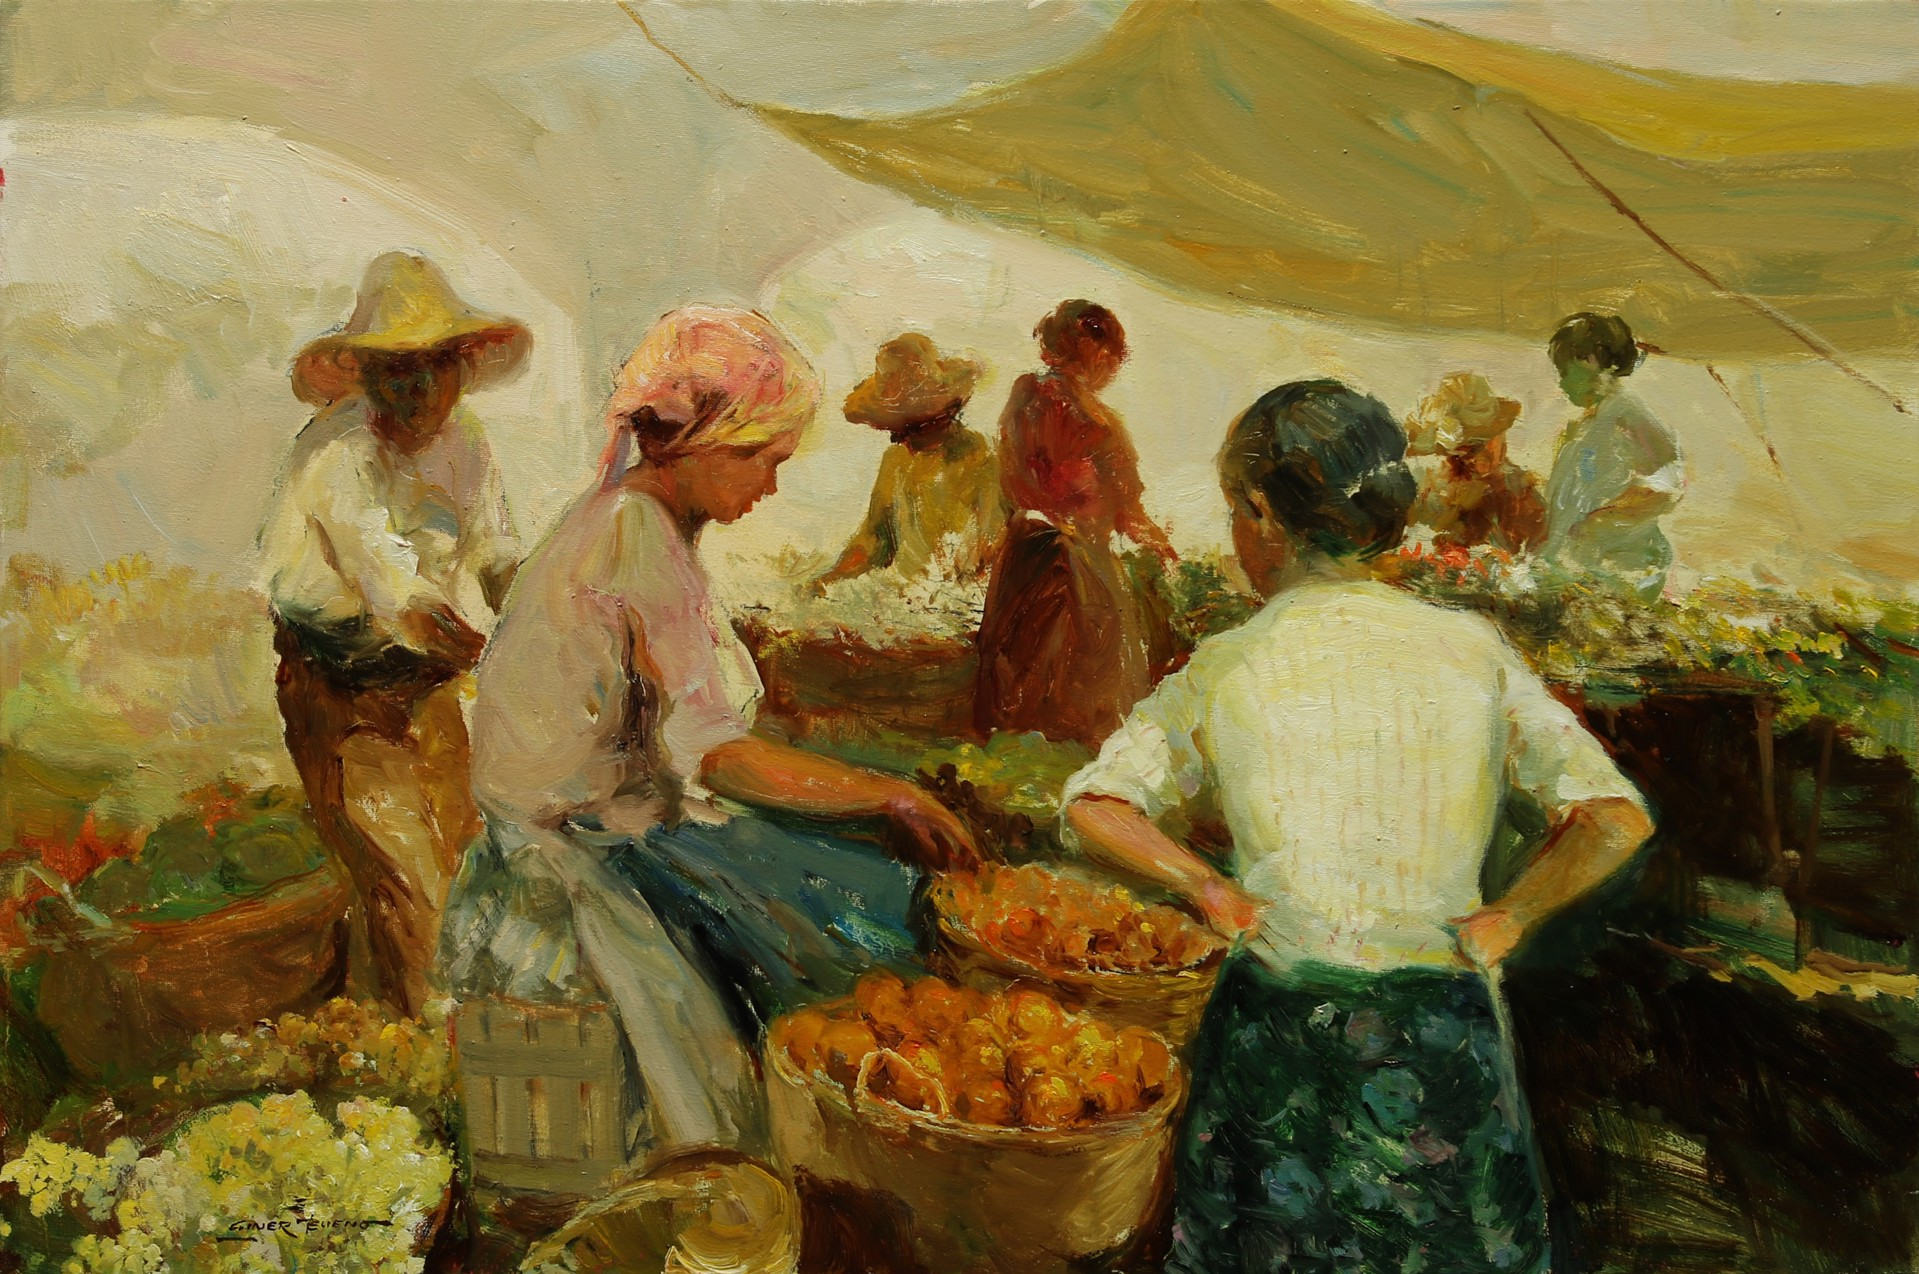 Frutus del Campo (Fruits of the Field) by Giner Bueno